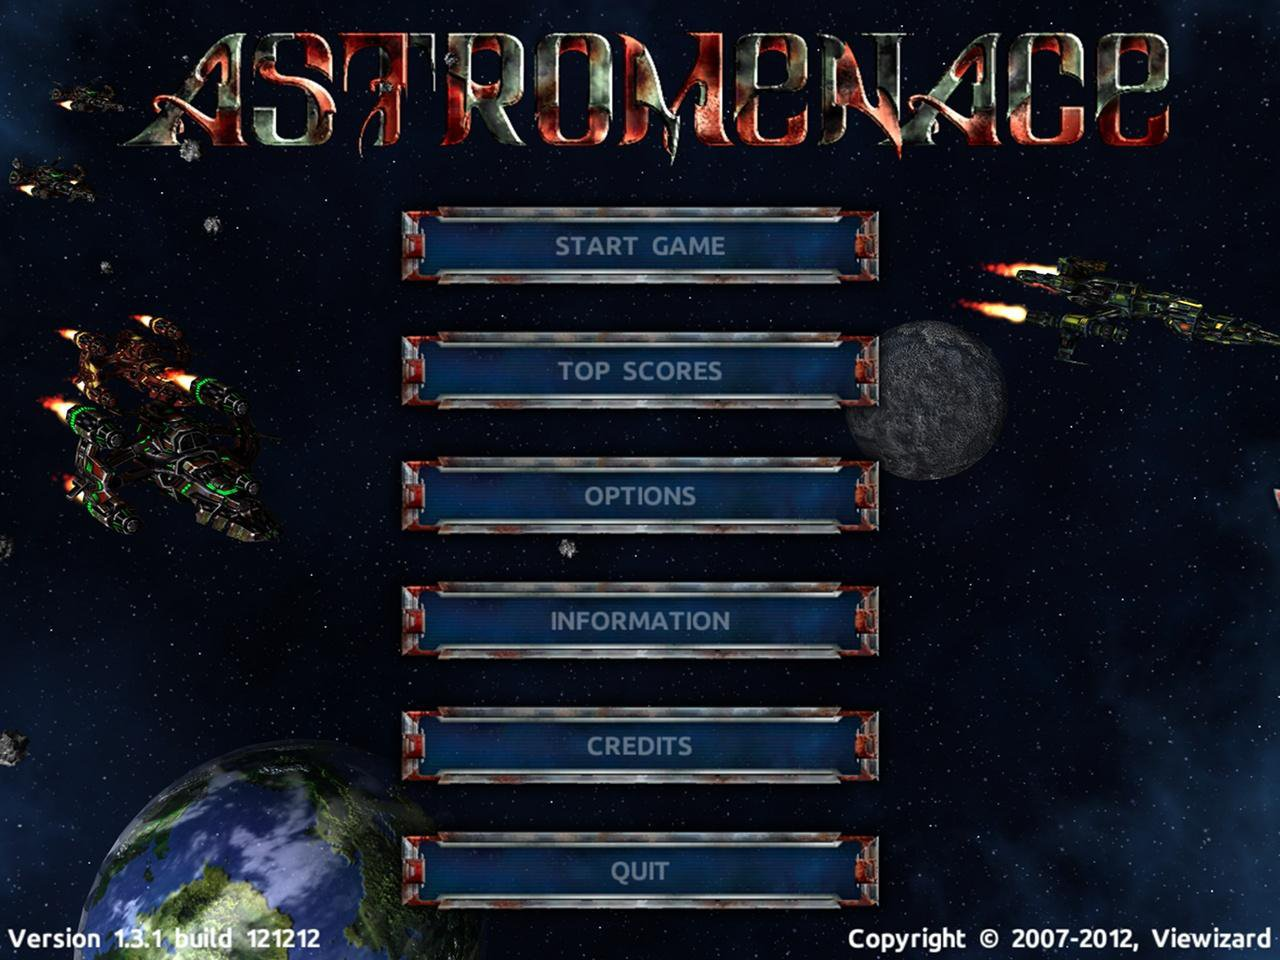 Download web tool or web app AstroMenace to run in Linux online